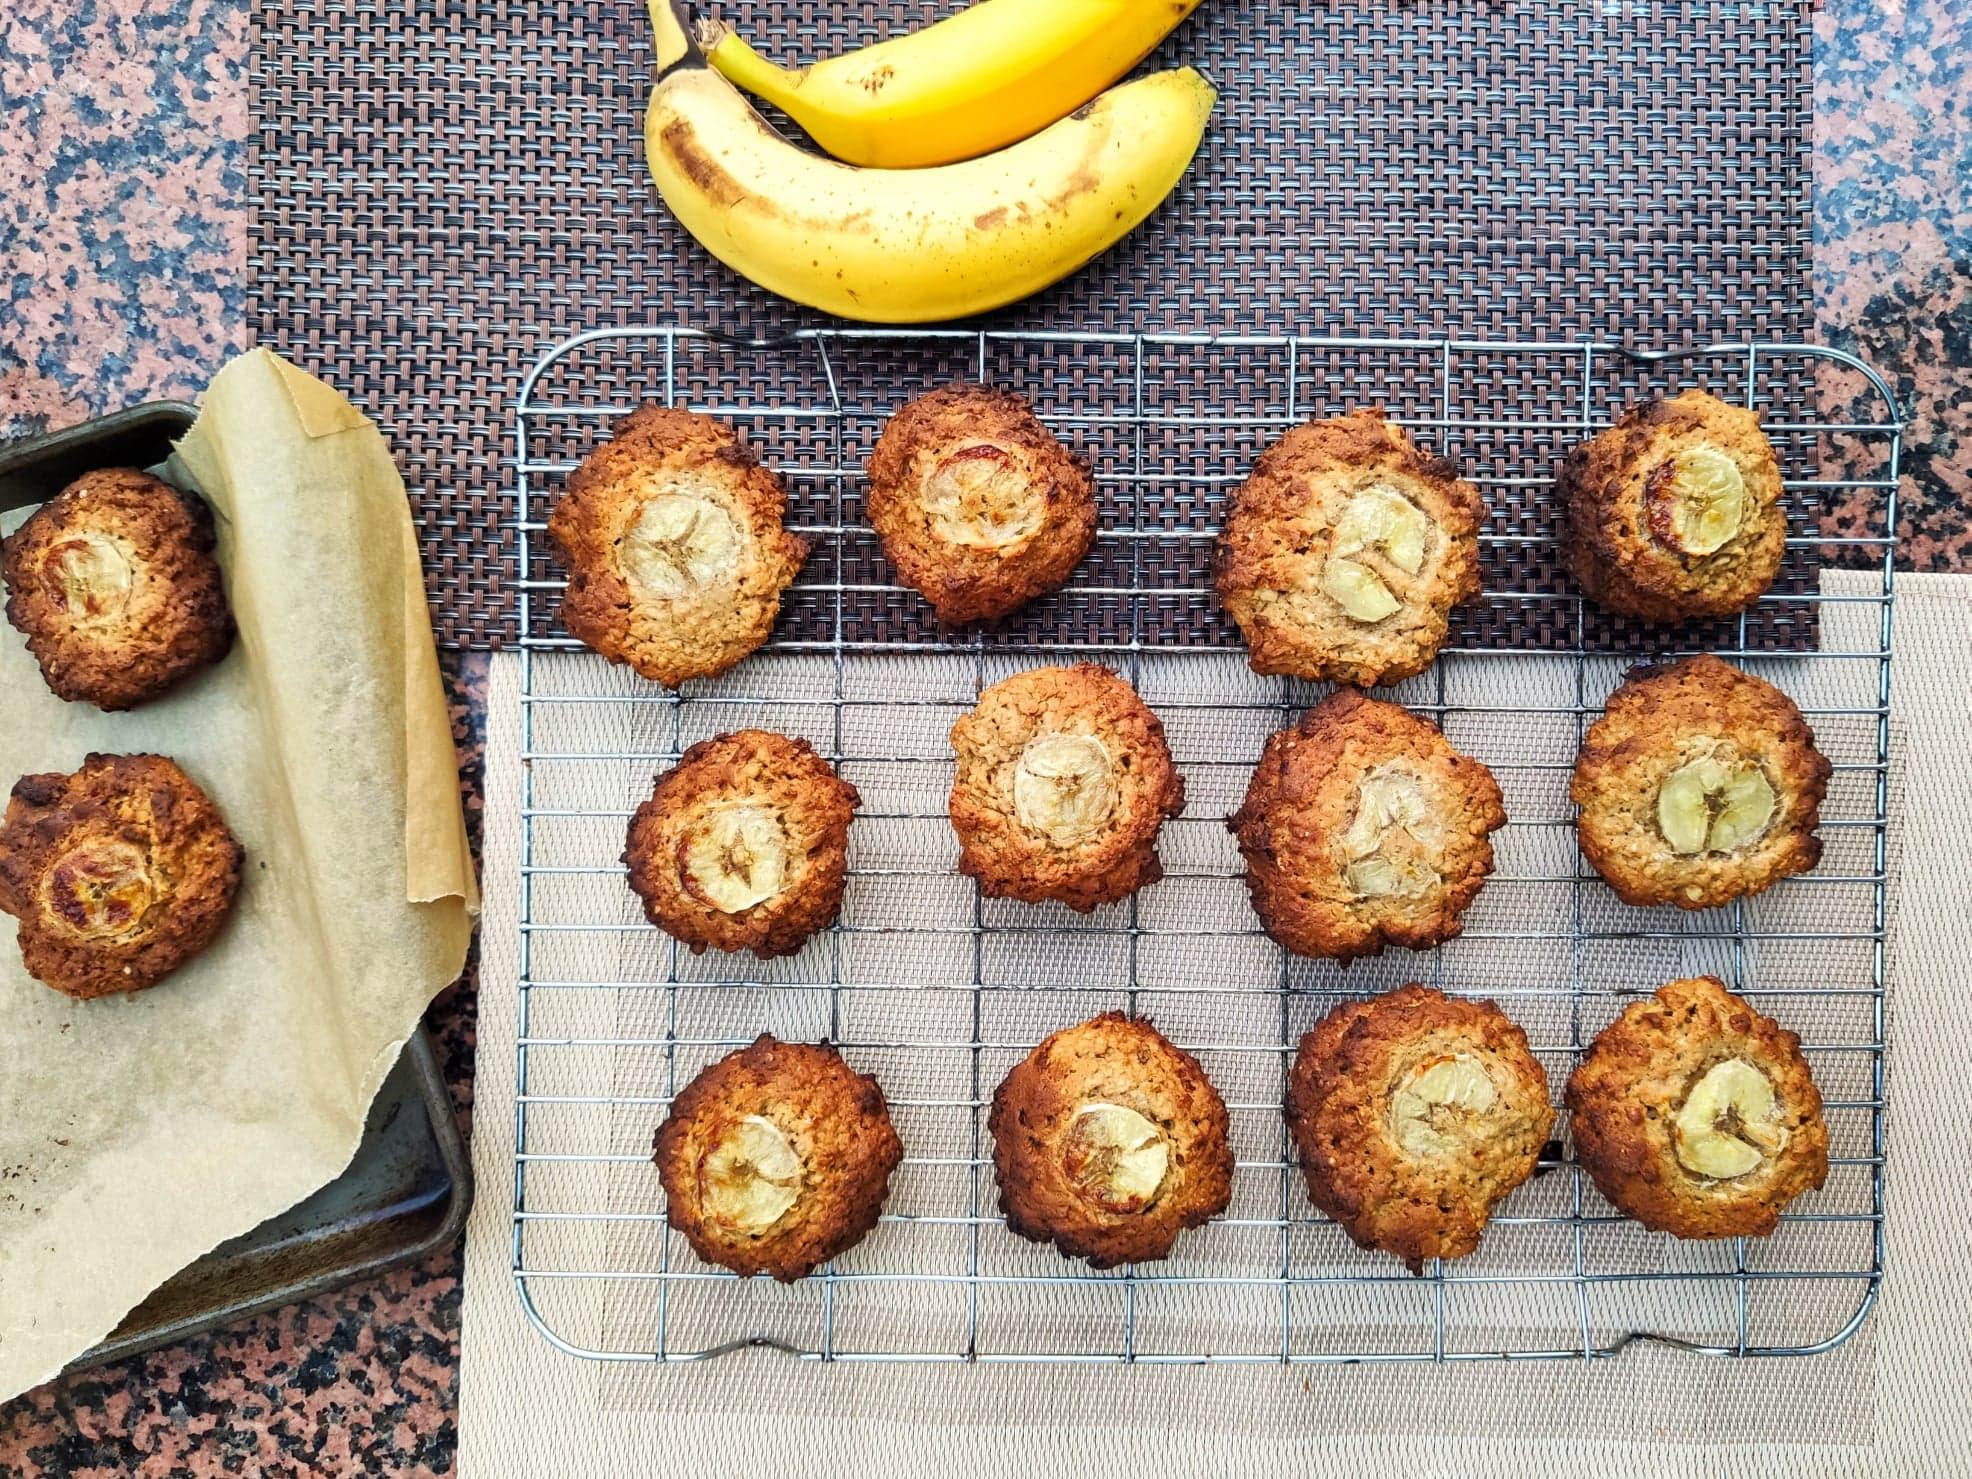 Banana and Peanut Butter Cookies (Ve)